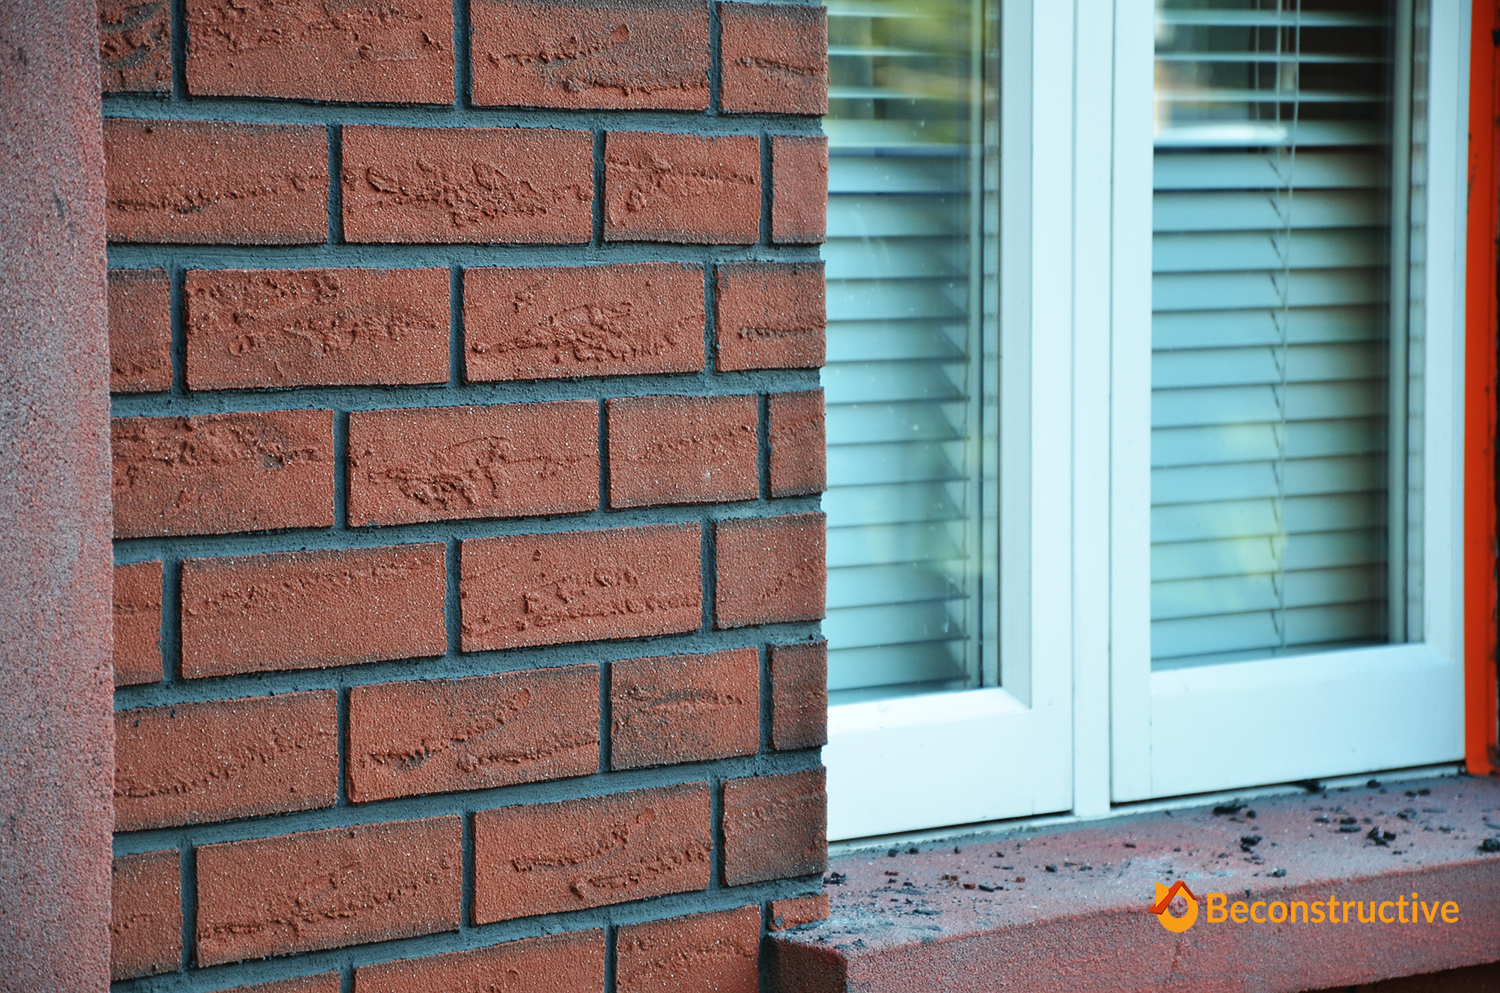 What Are Acrylic Brick Slips